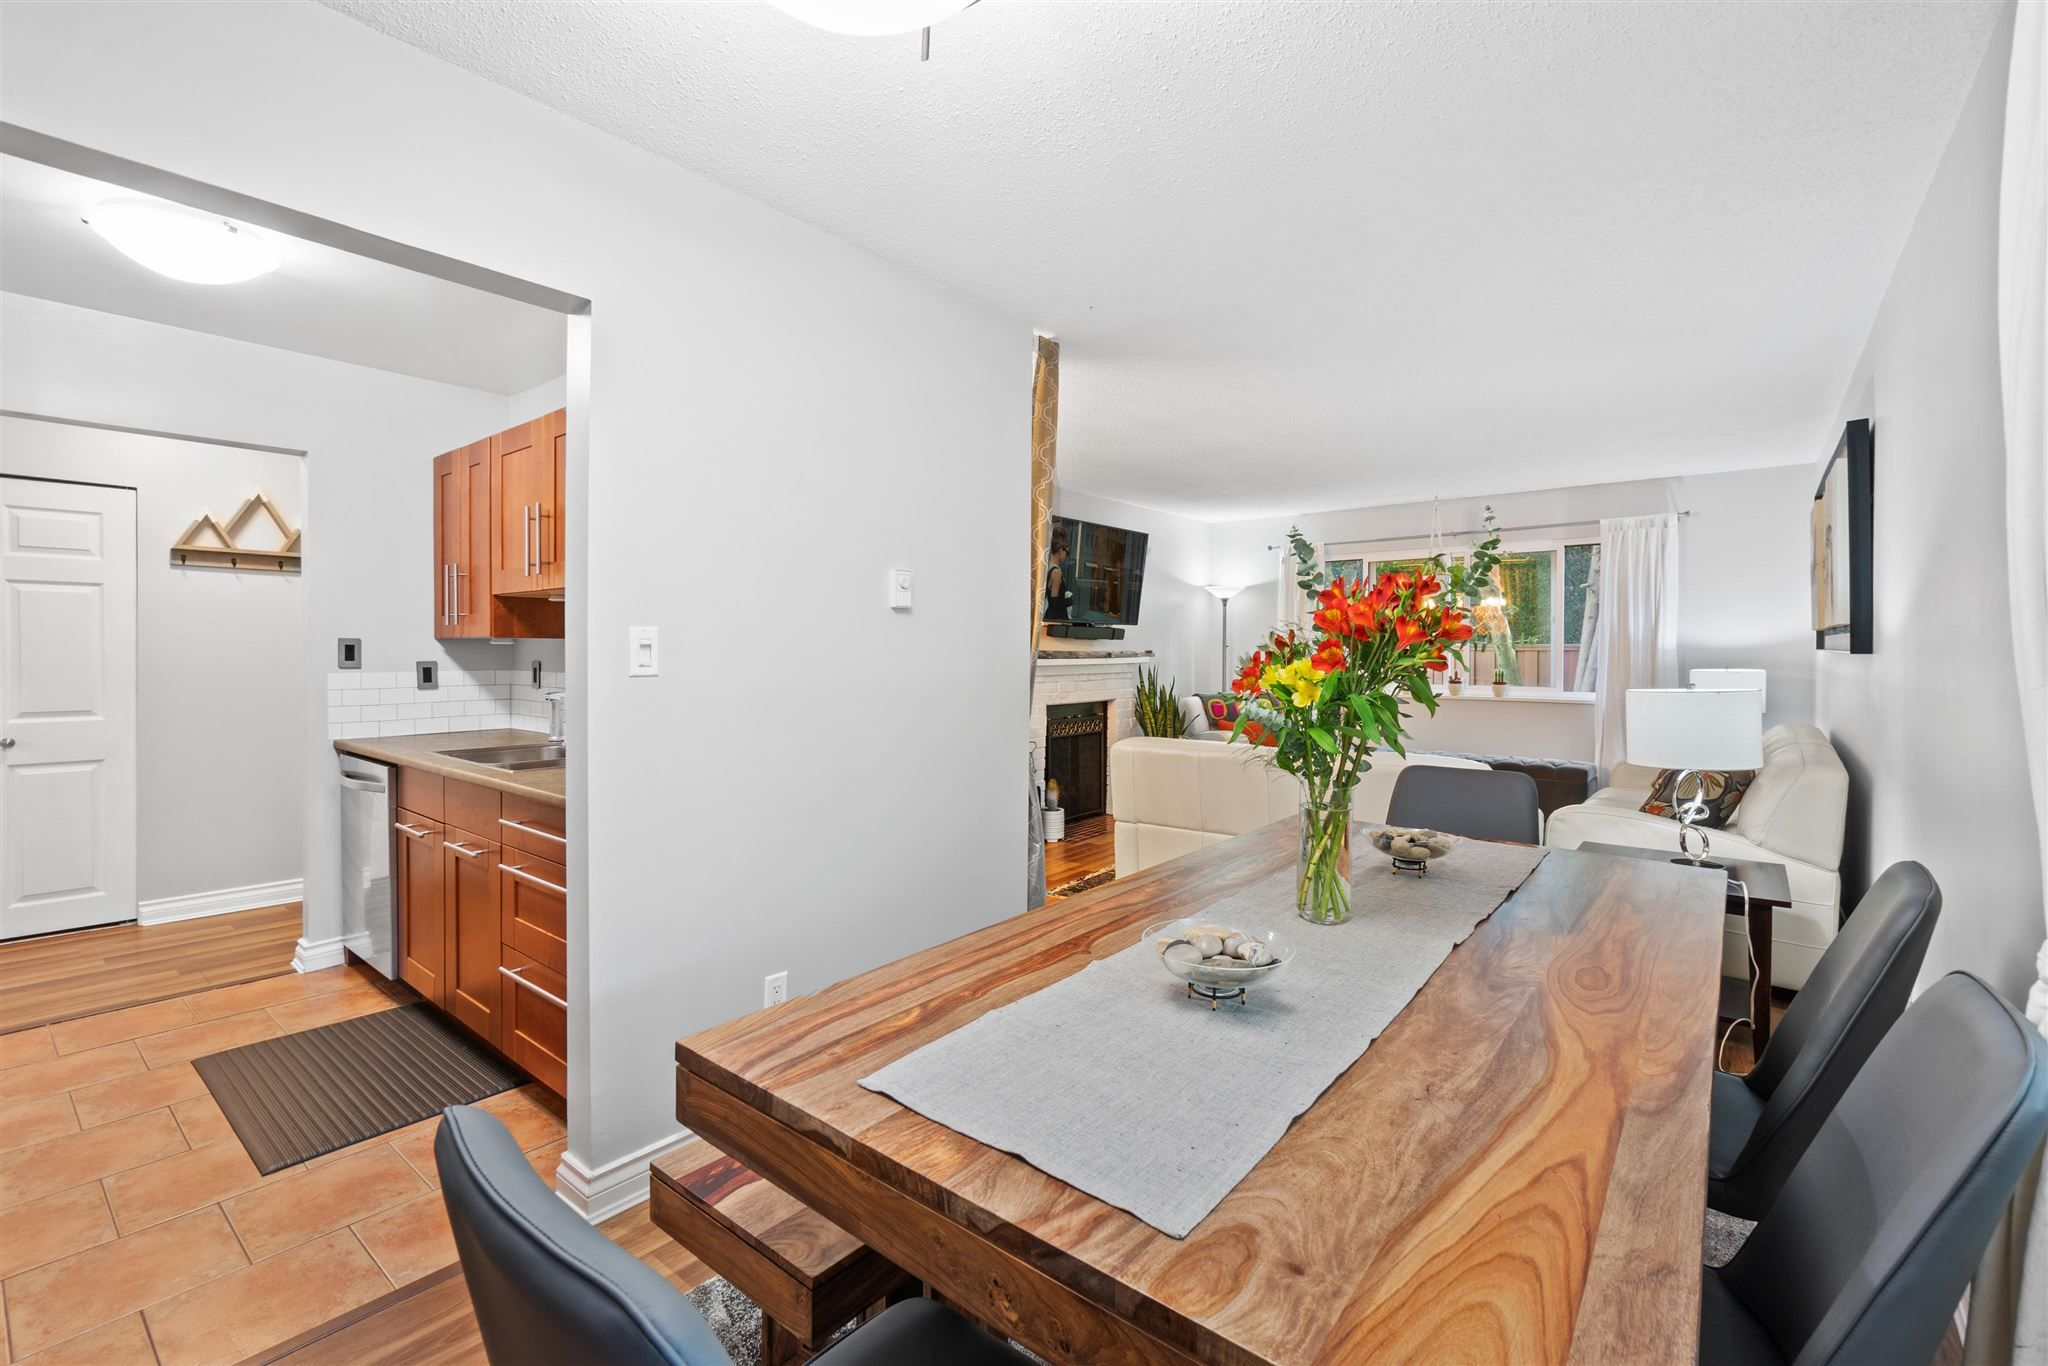 """Main Photo: 11658 KINGSBRIDGE Drive in Richmond: Ironwood Townhouse for sale in """"Kingswood Downes"""" : MLS®# R2598051"""